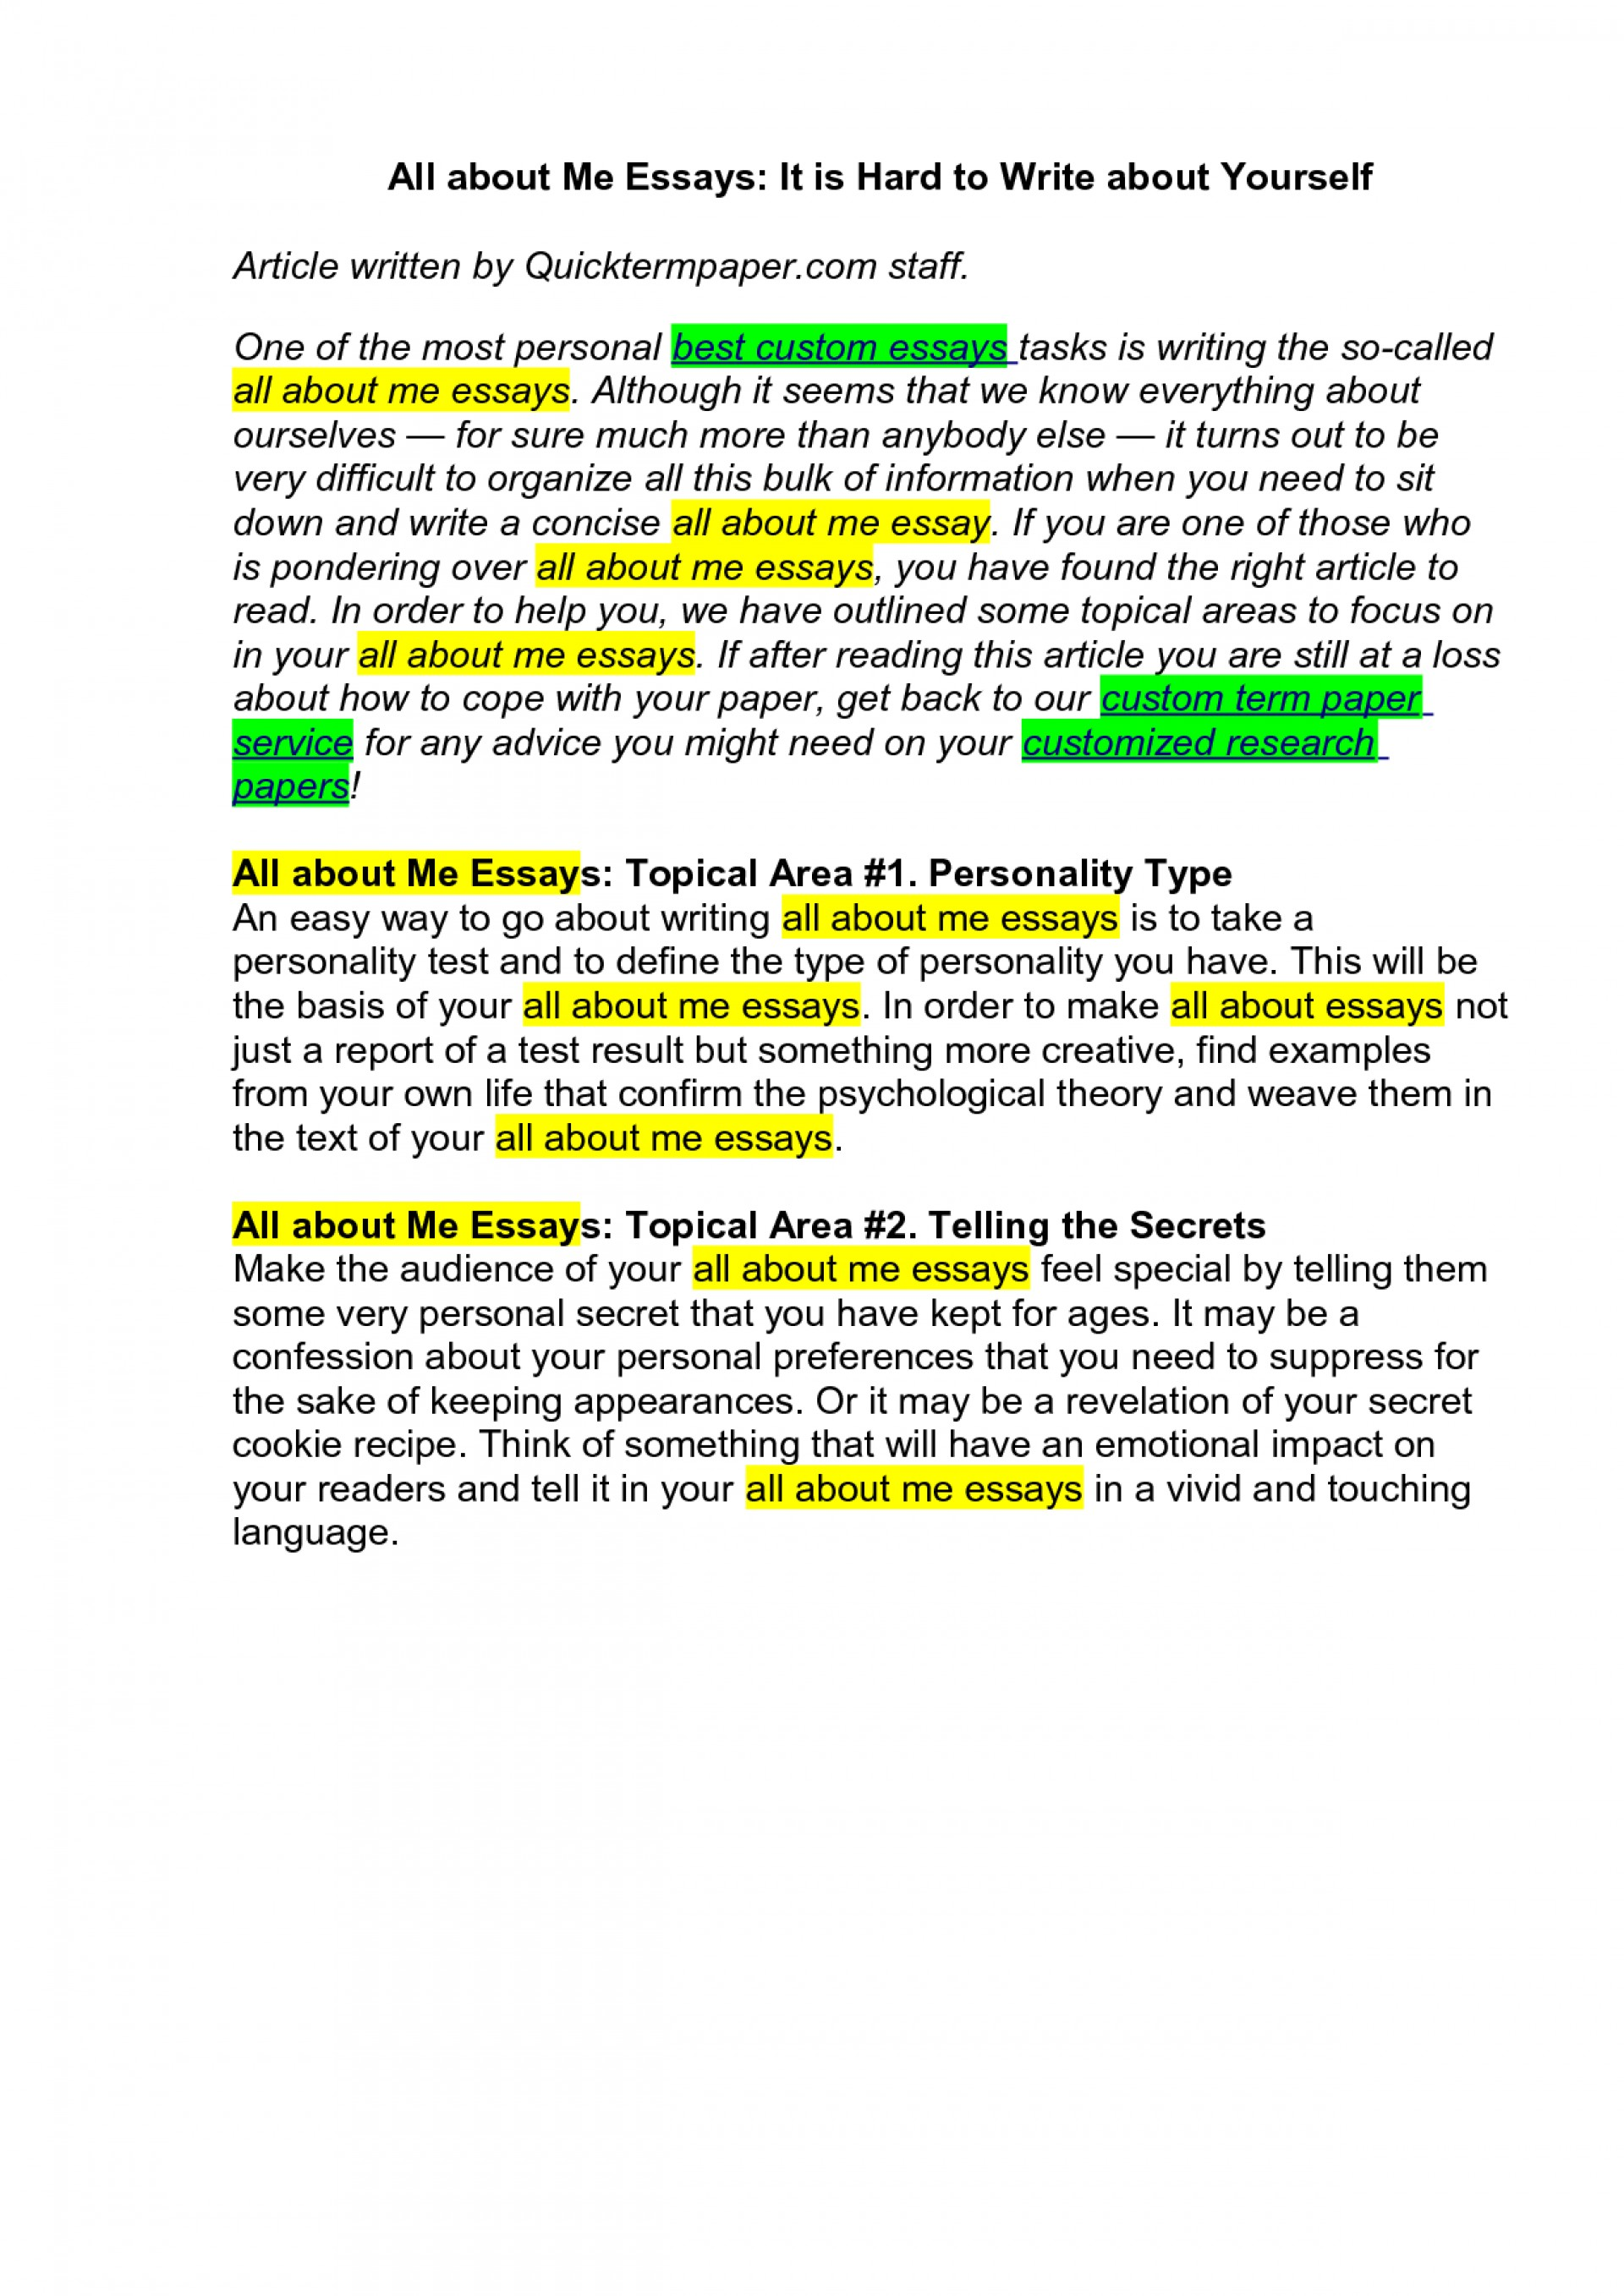 021 Essay Example How To Start An Amazing Bad With A Question Ways Definition 1920